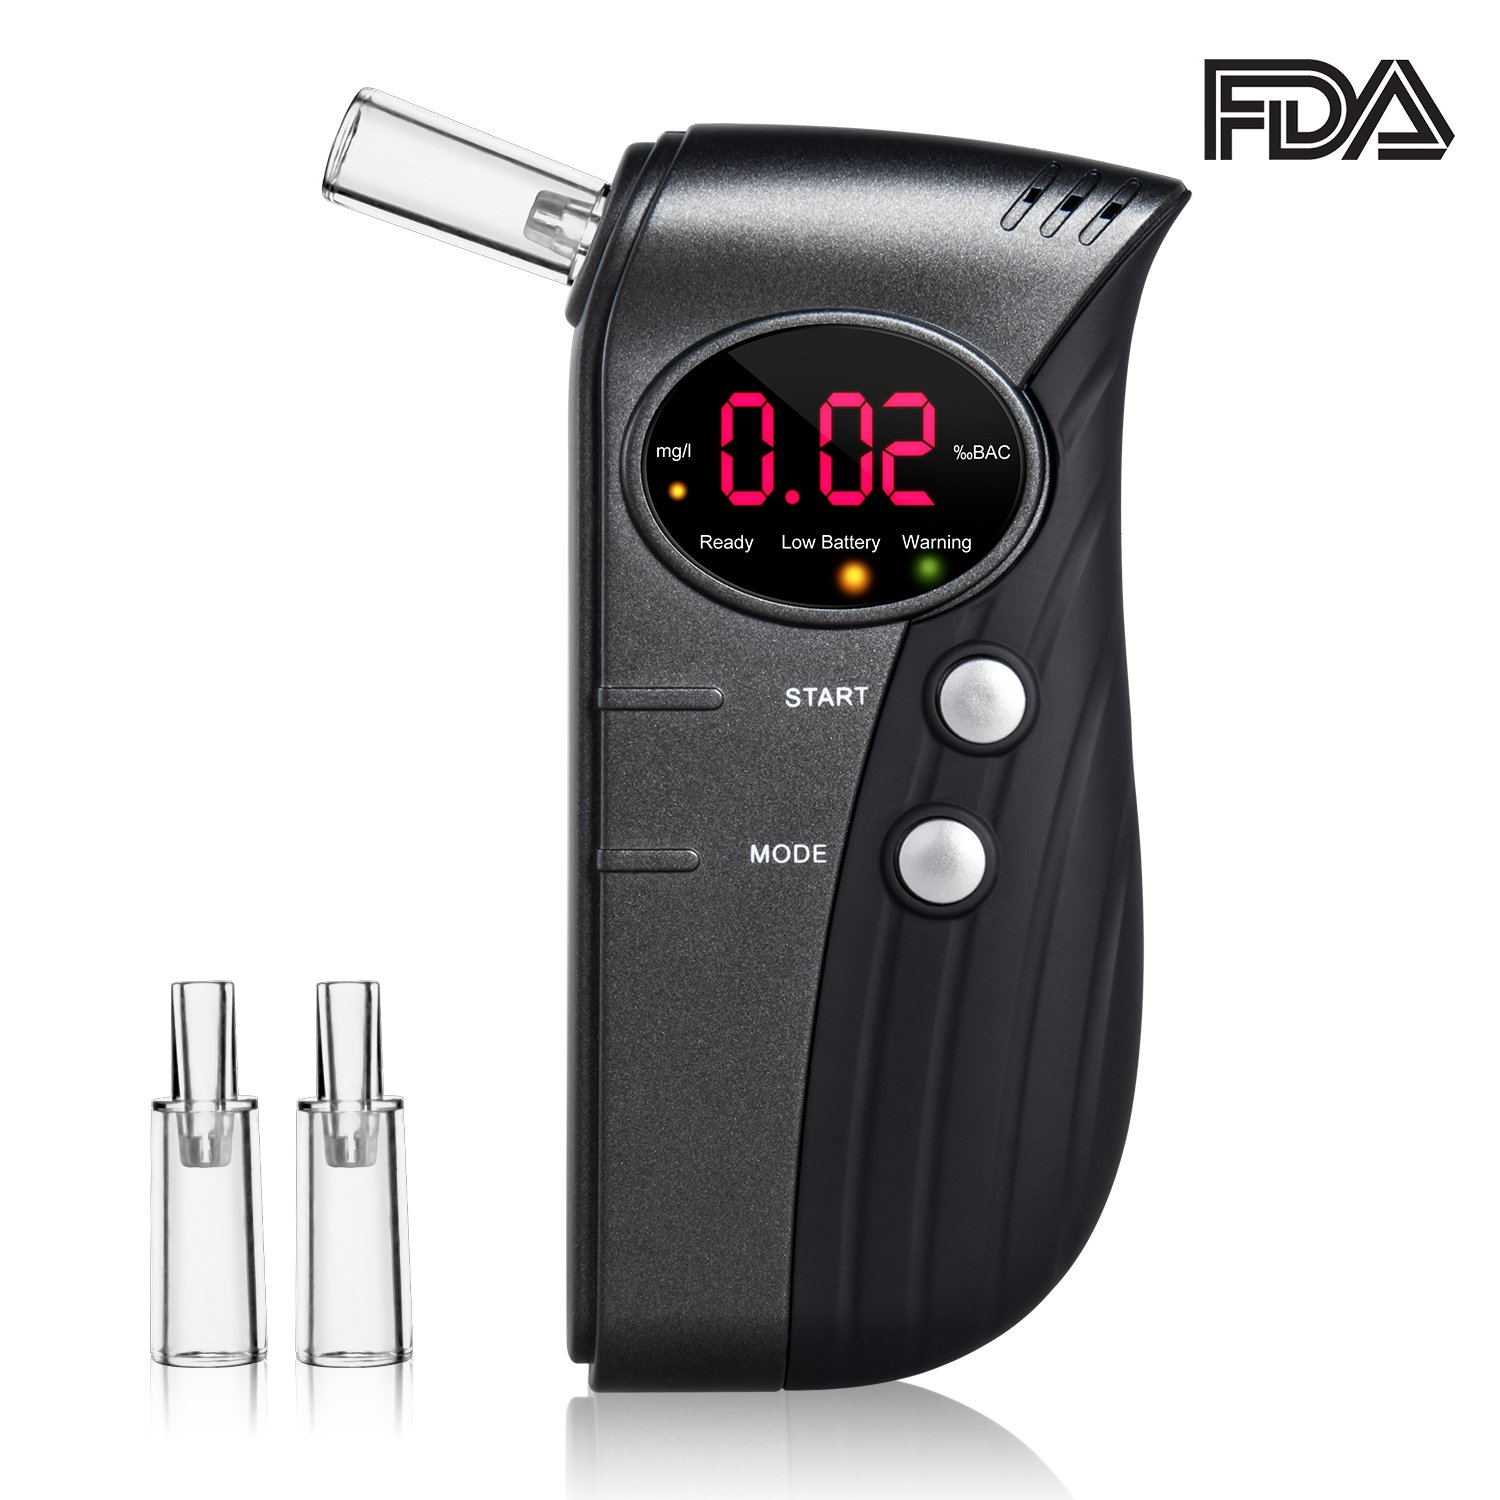 Breathalyzer, Portable Breath Alcohol Tester, Professional Digital Battery Power BAC Tracker with Mouthpiece and LCD Display (Black1)